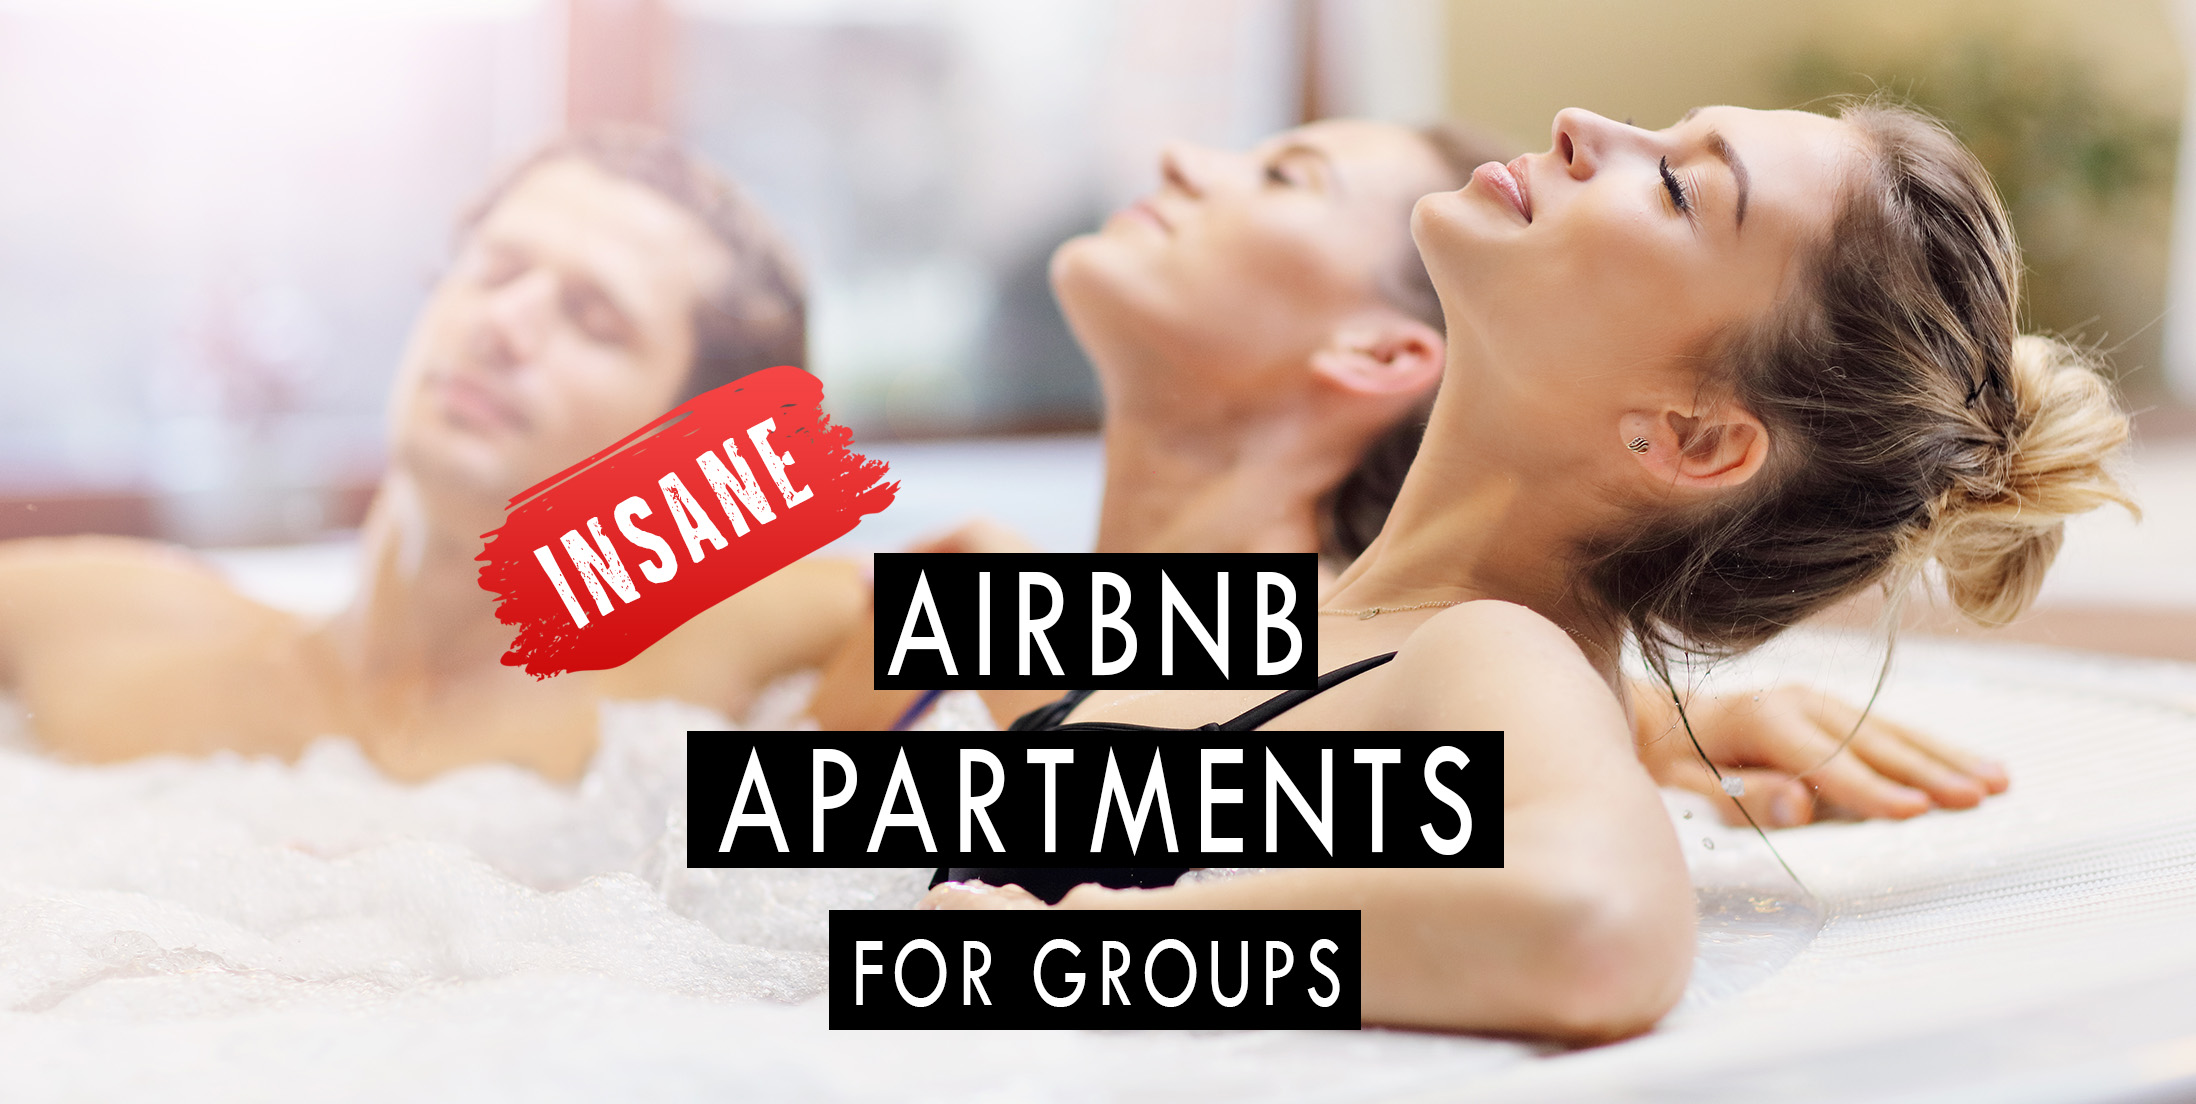 Insane Airbnb Apartments for Groups (Banner)